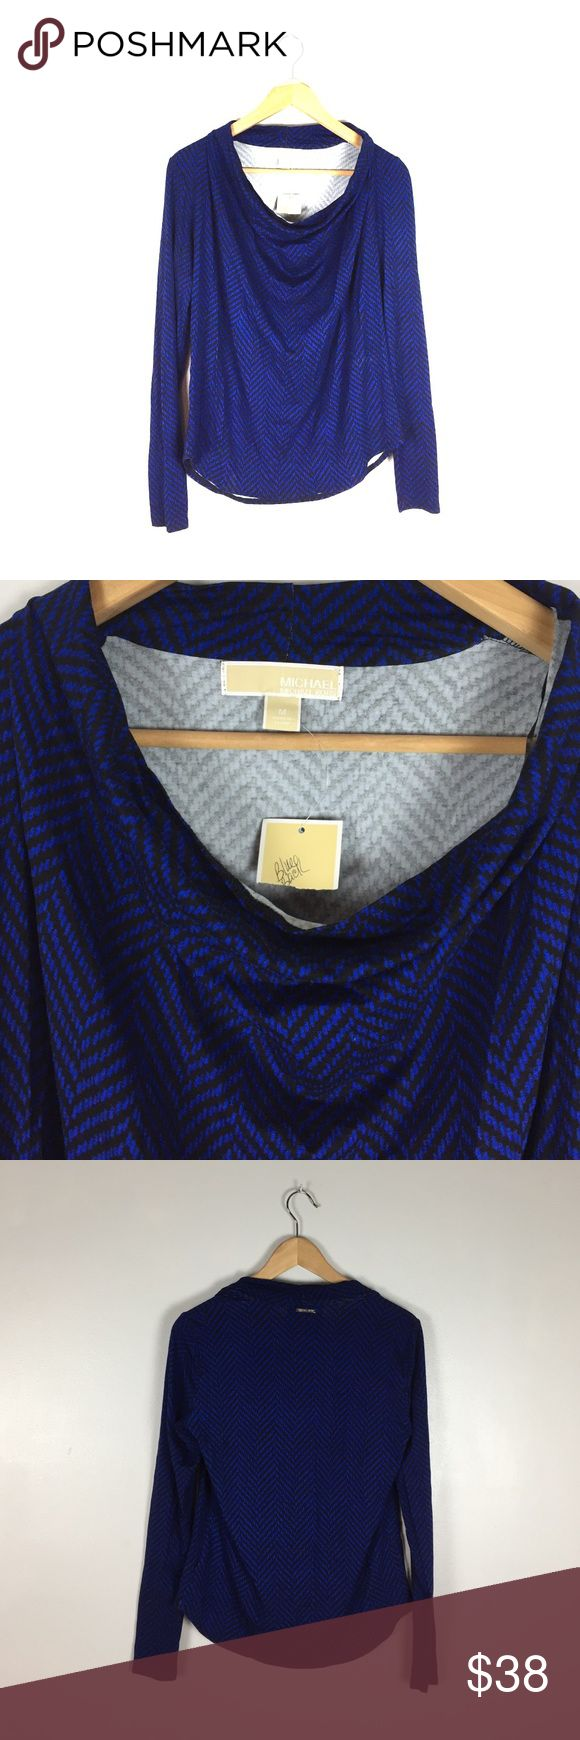 Michael Kors Blue and Black Chevron Top, M NWT Michael Kira Shirt with a draped neck and chevron pattern.  Size M. Michael Kors Tops